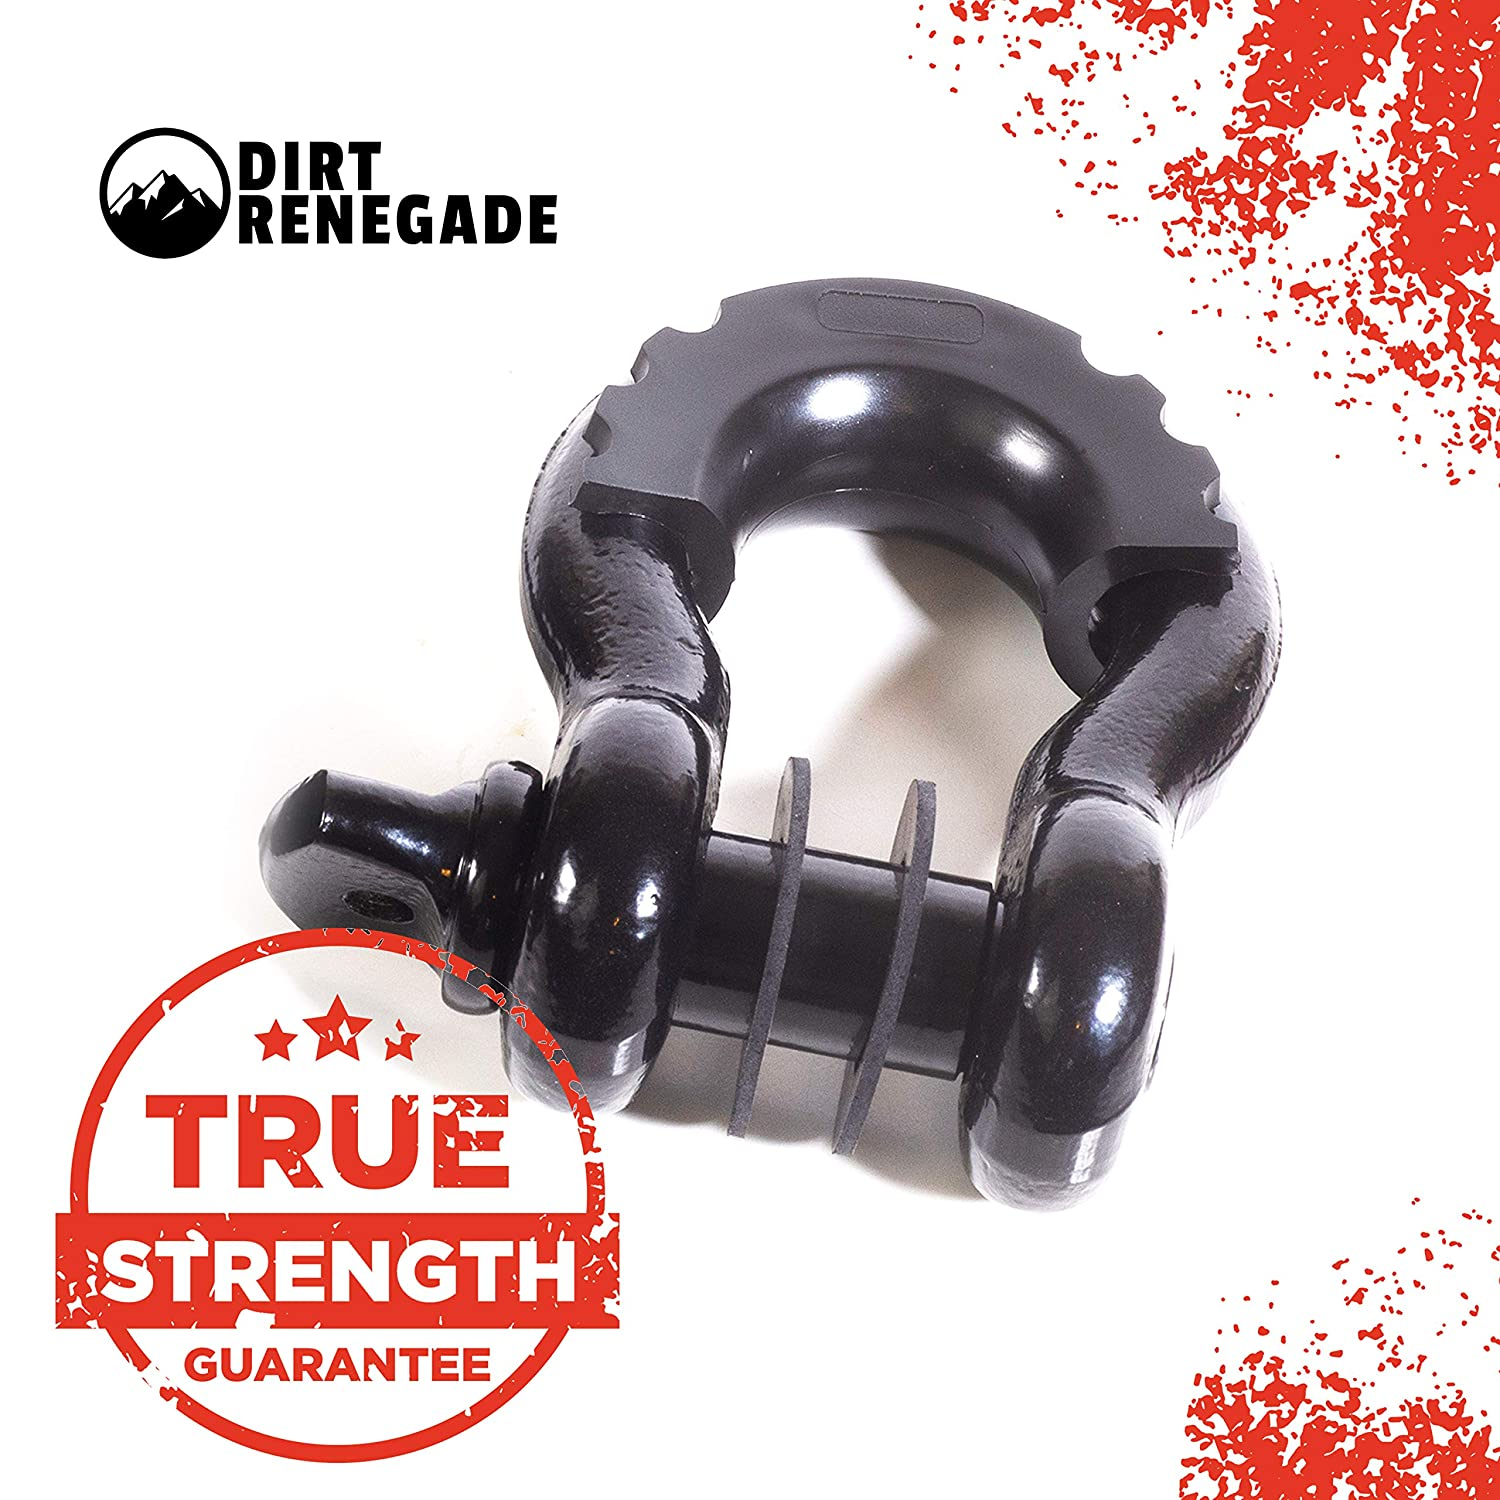 Jeep Tow 48,100 lb SUV Overland Off-Roading Isolator Dirt Renegade D Ring Shackles with Isolators Winch Hitch 3//4 Recovery Shackle Washer Set Towing Truck 7//8 Pin Off Road Car